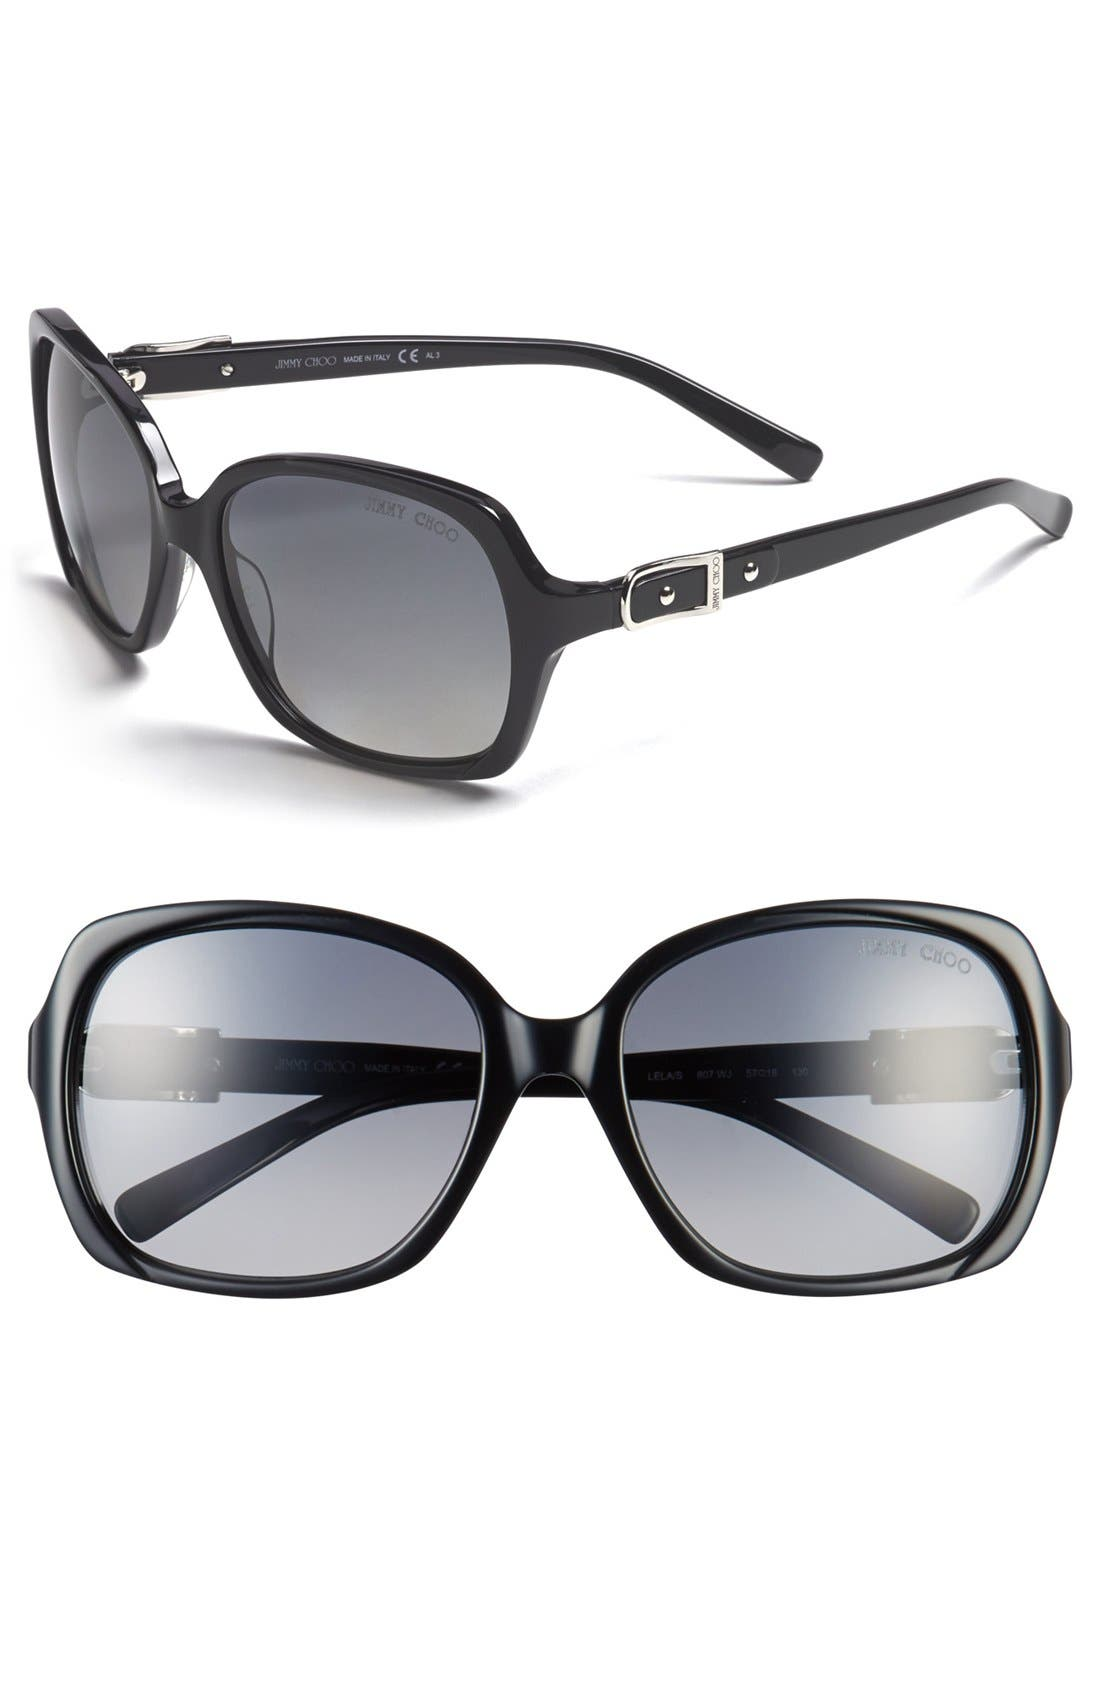 Main Image - Jimmy Choo 'Buckle' 57mm Polarized Sunglasses